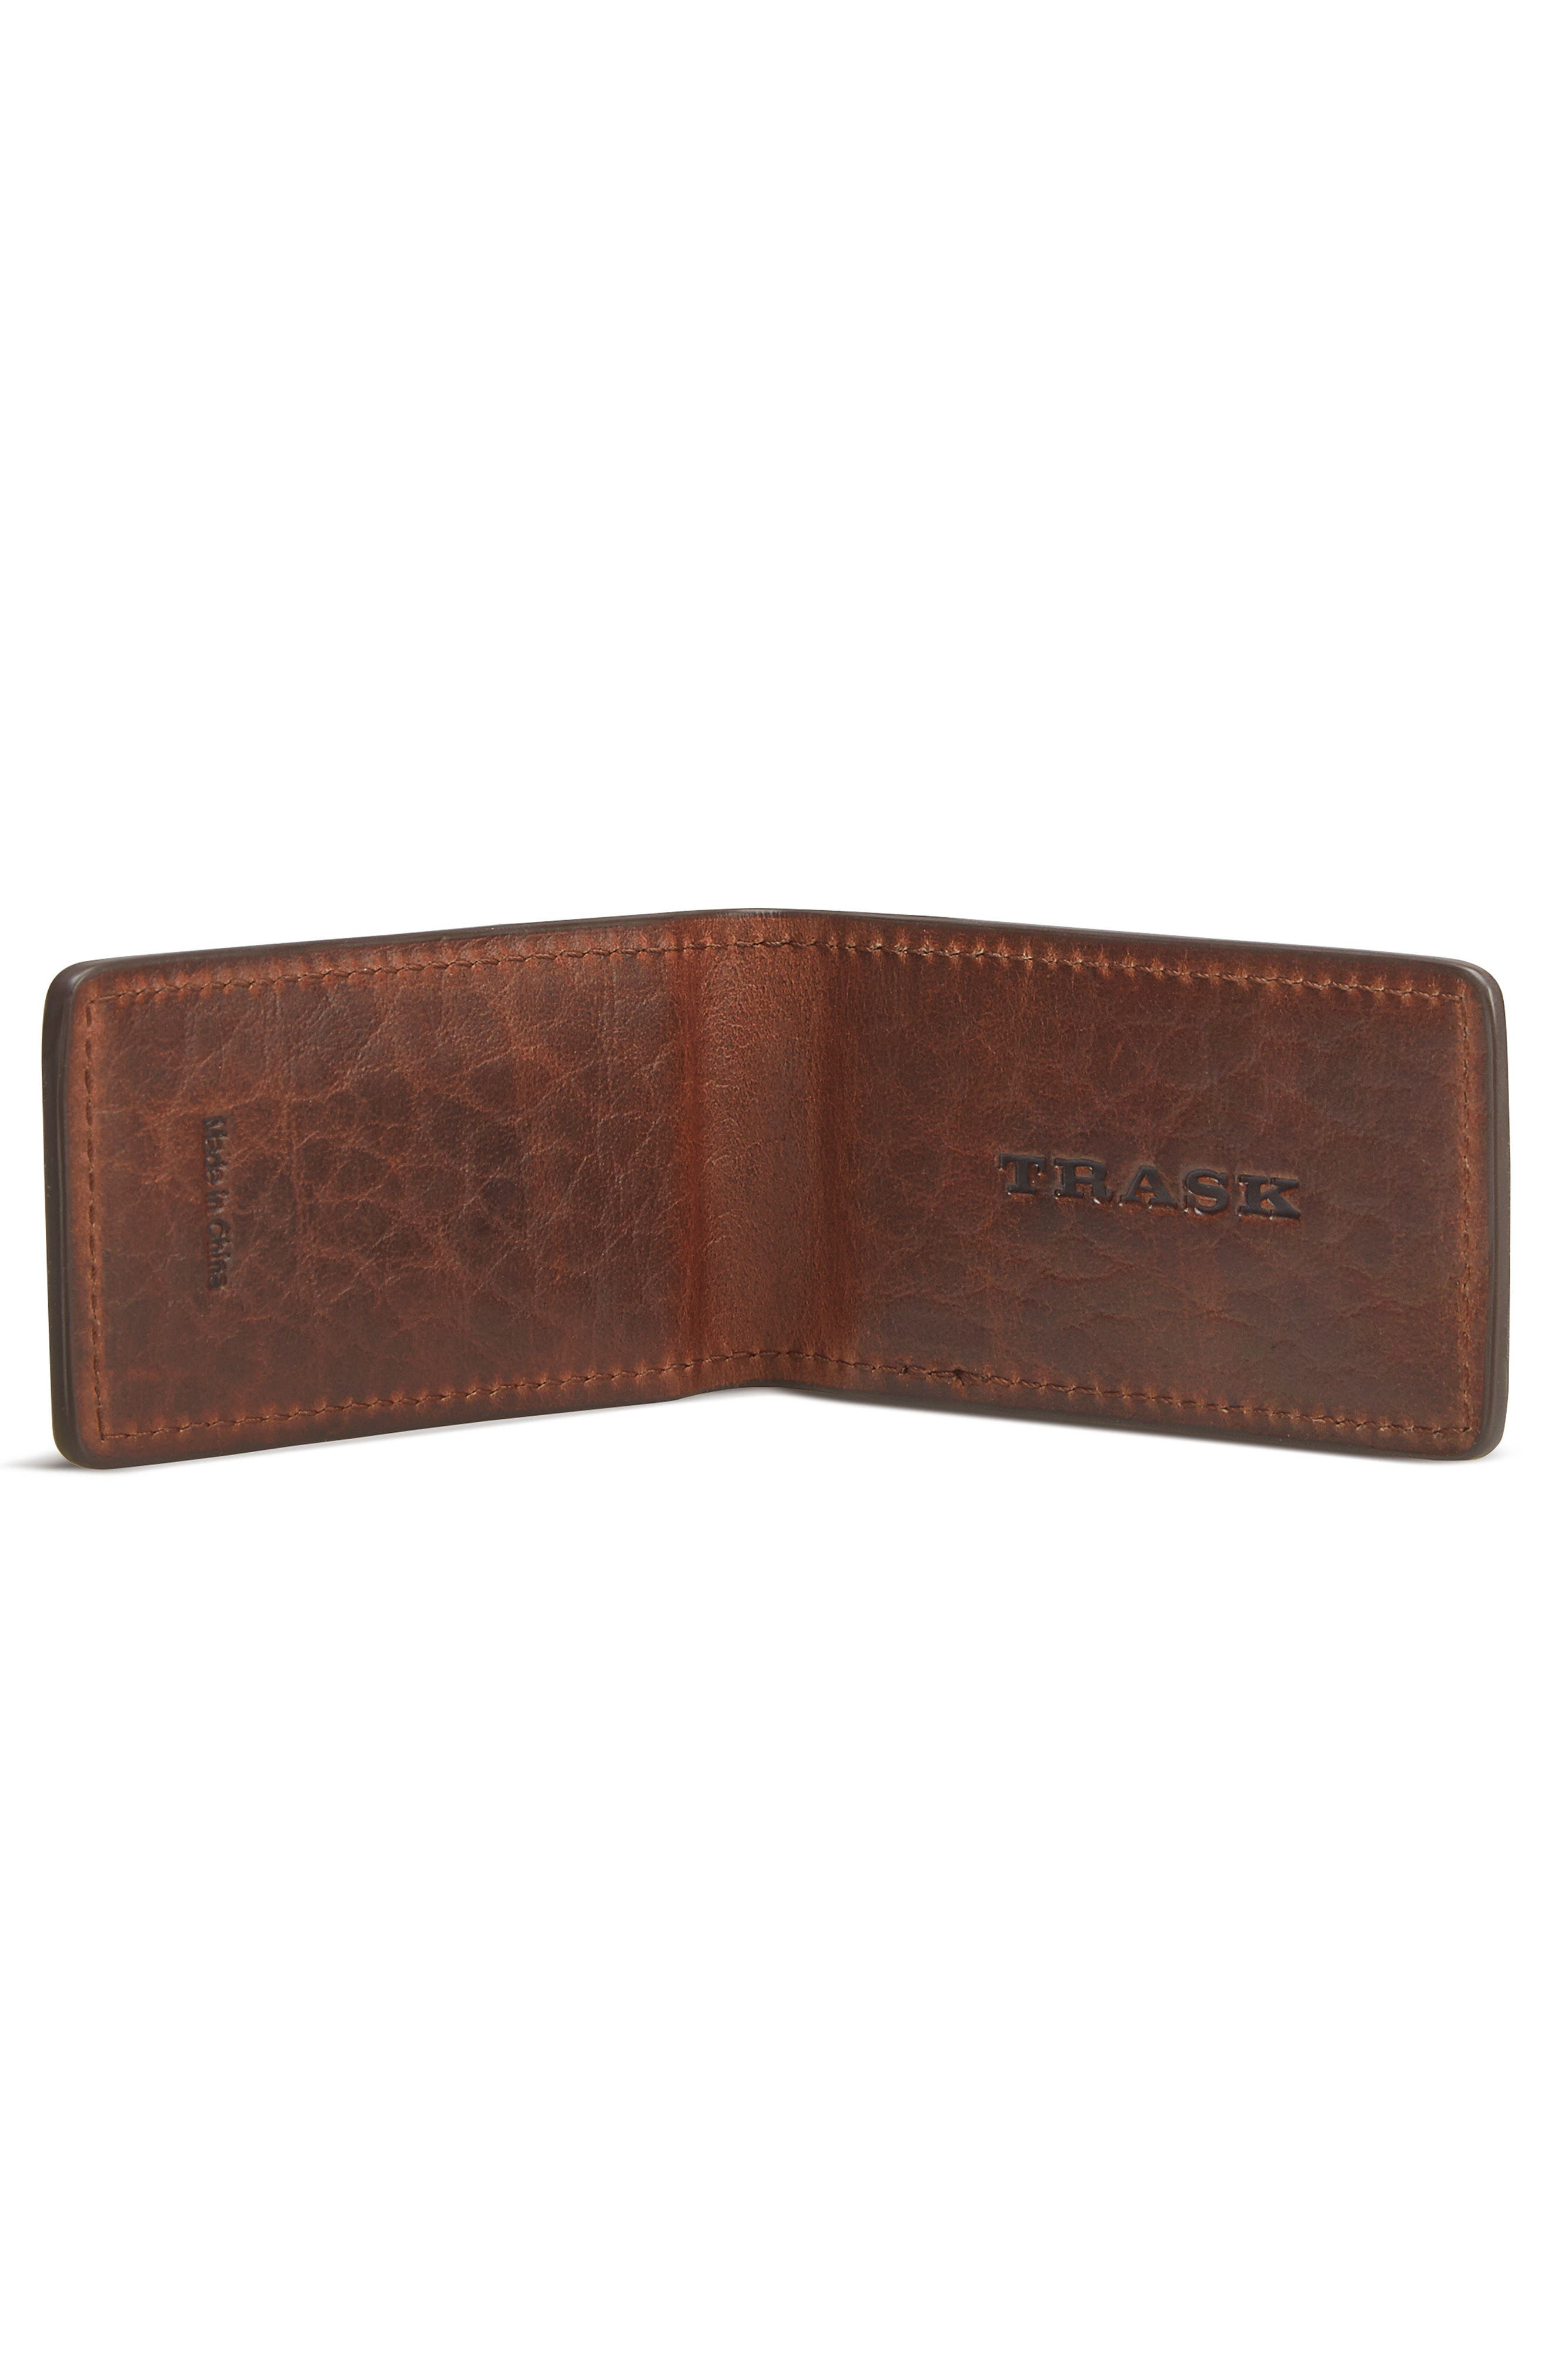 Leather Money Clip,                             Alternate thumbnail 2, color,                             Cognac